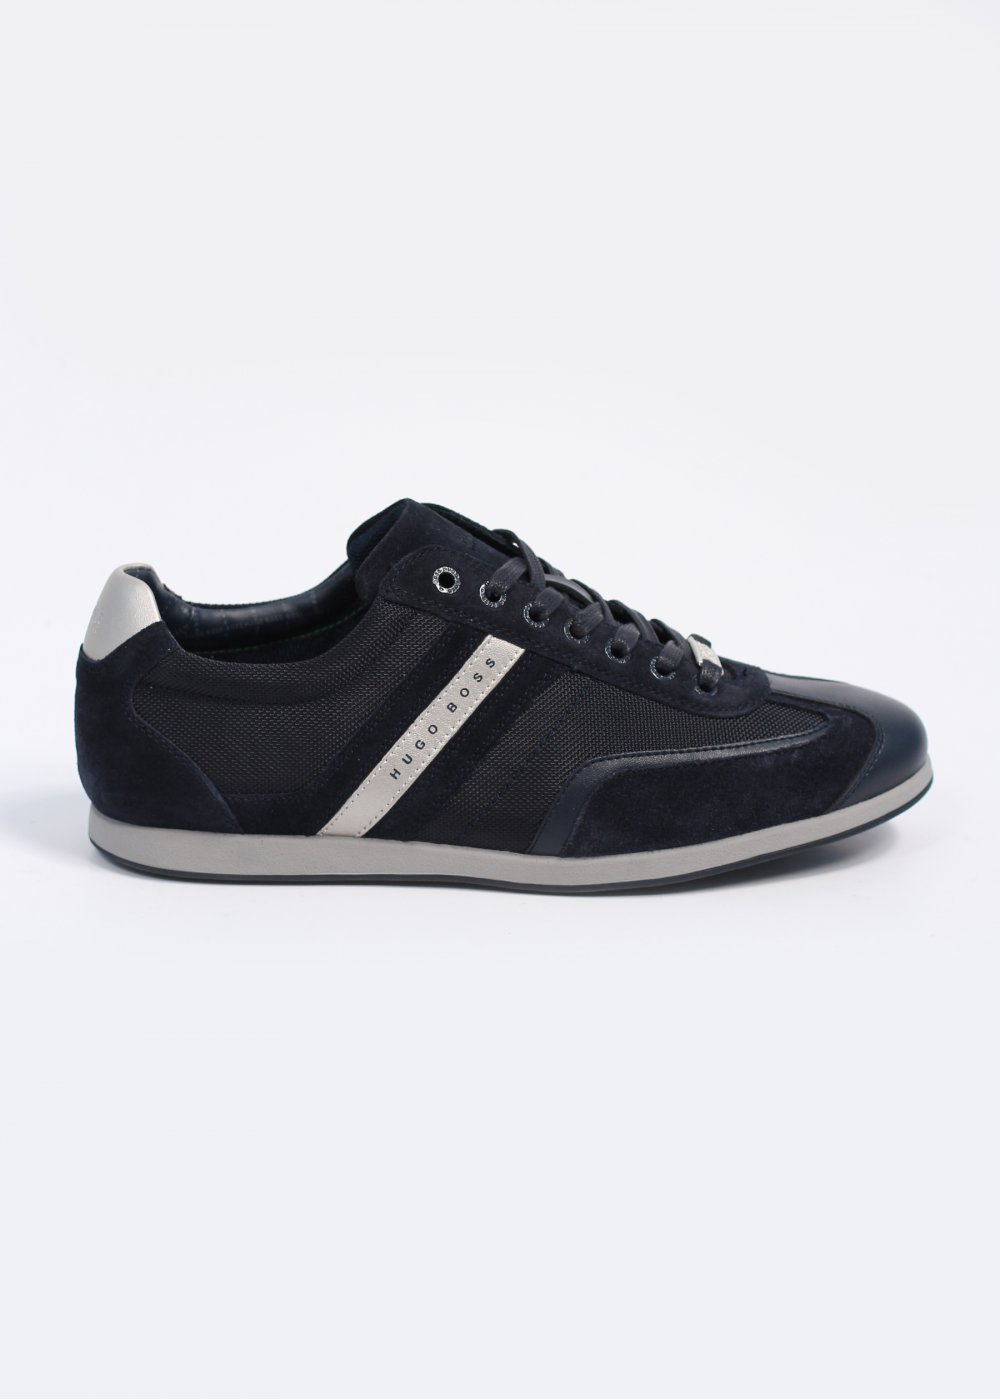 Hugo Boss Green Streametal Trainers - Navy f2d52d5def09